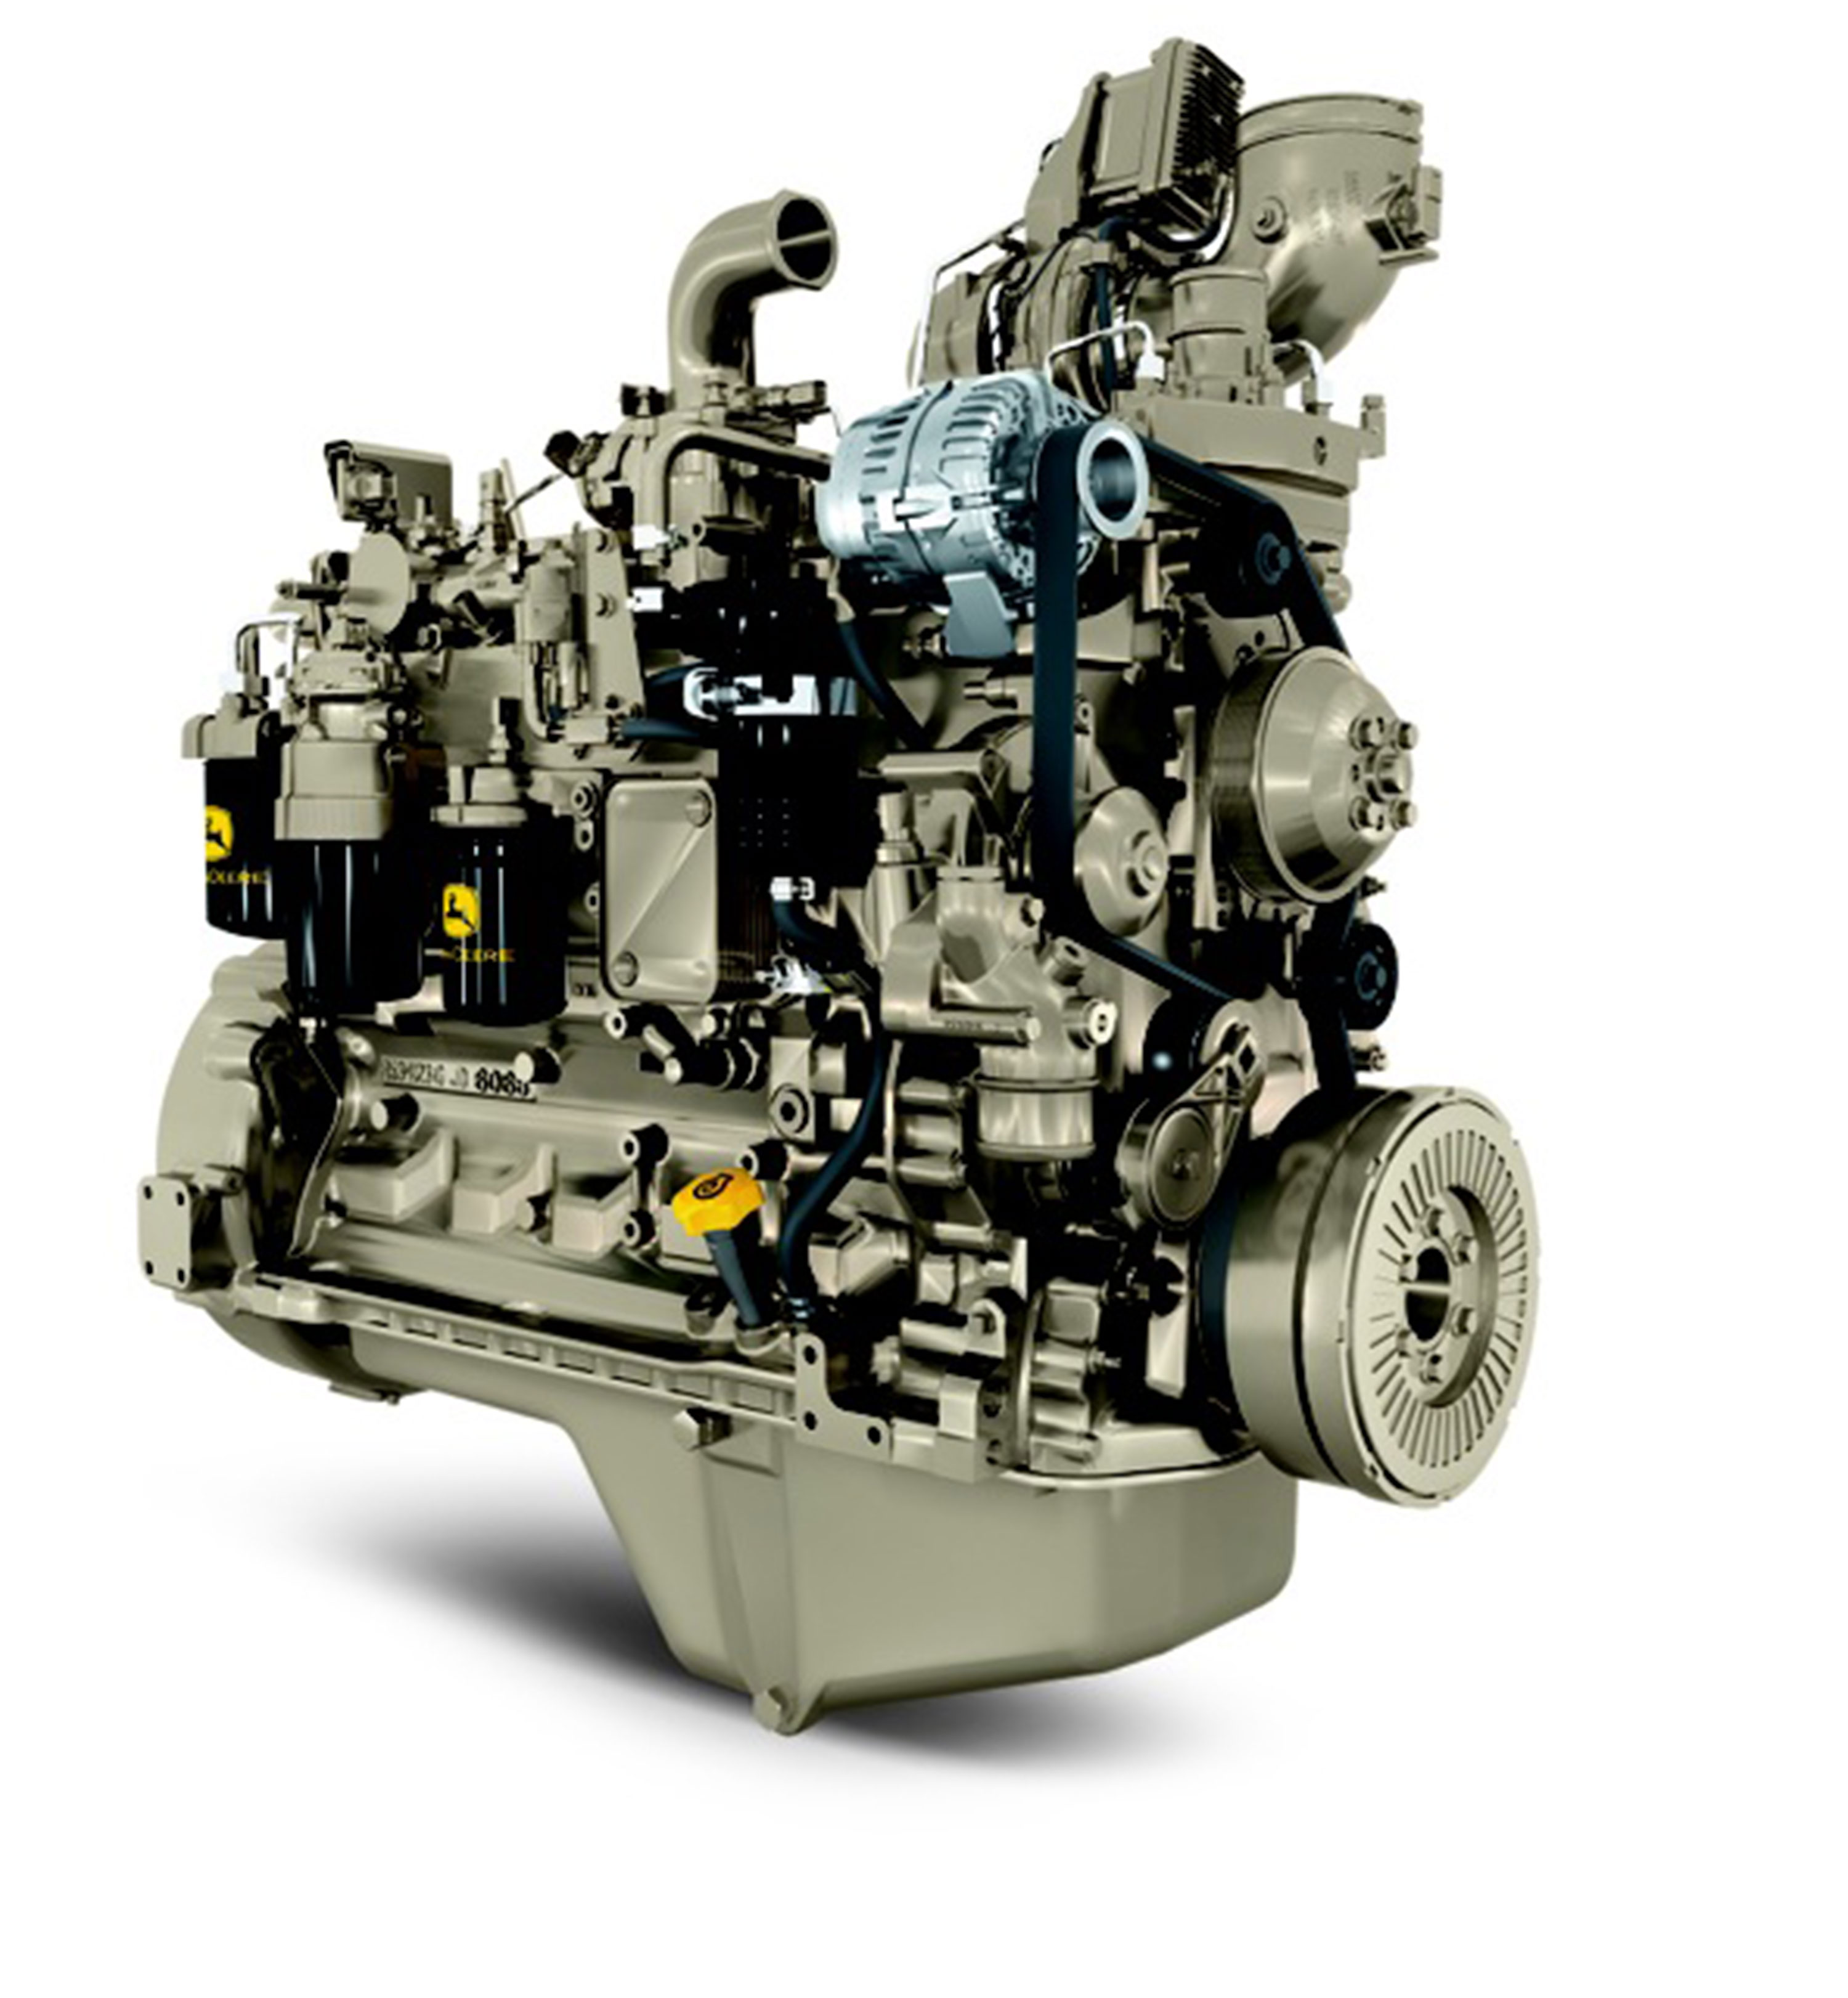 The PowerTech PVS 6.8L industrial diesel engine ranges from 104 to 187 ...